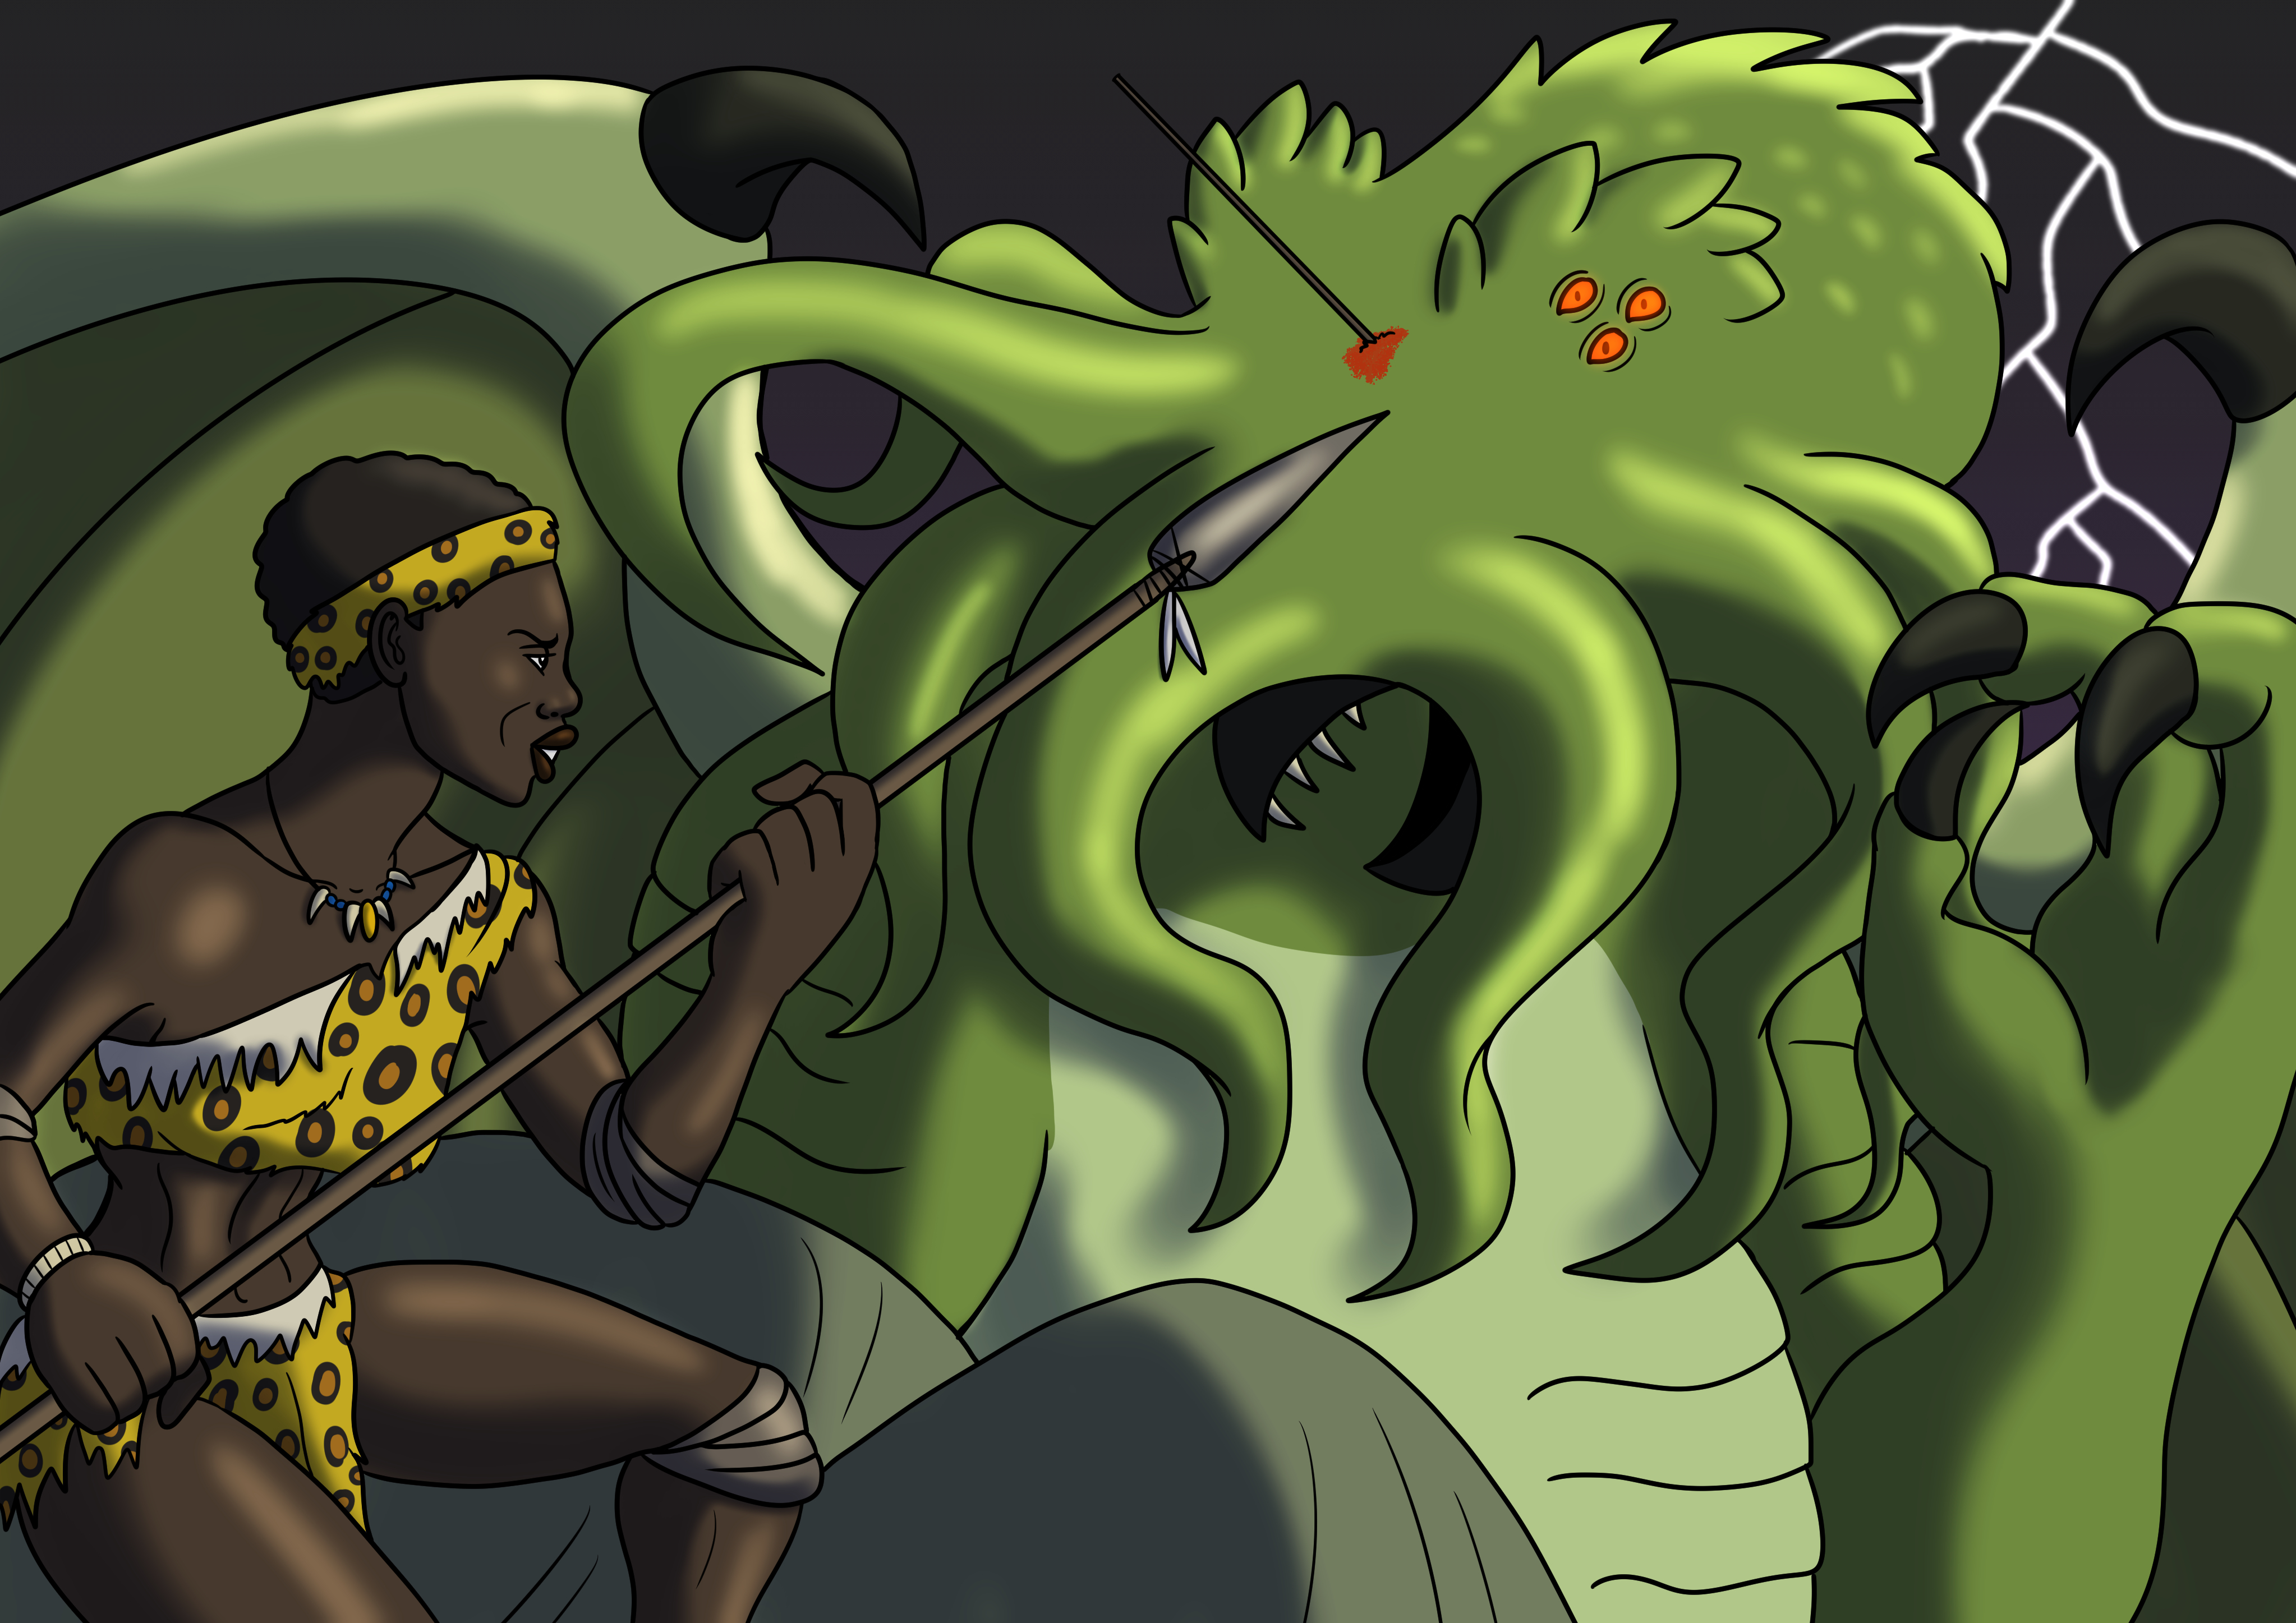 The Coming of Cthulhu